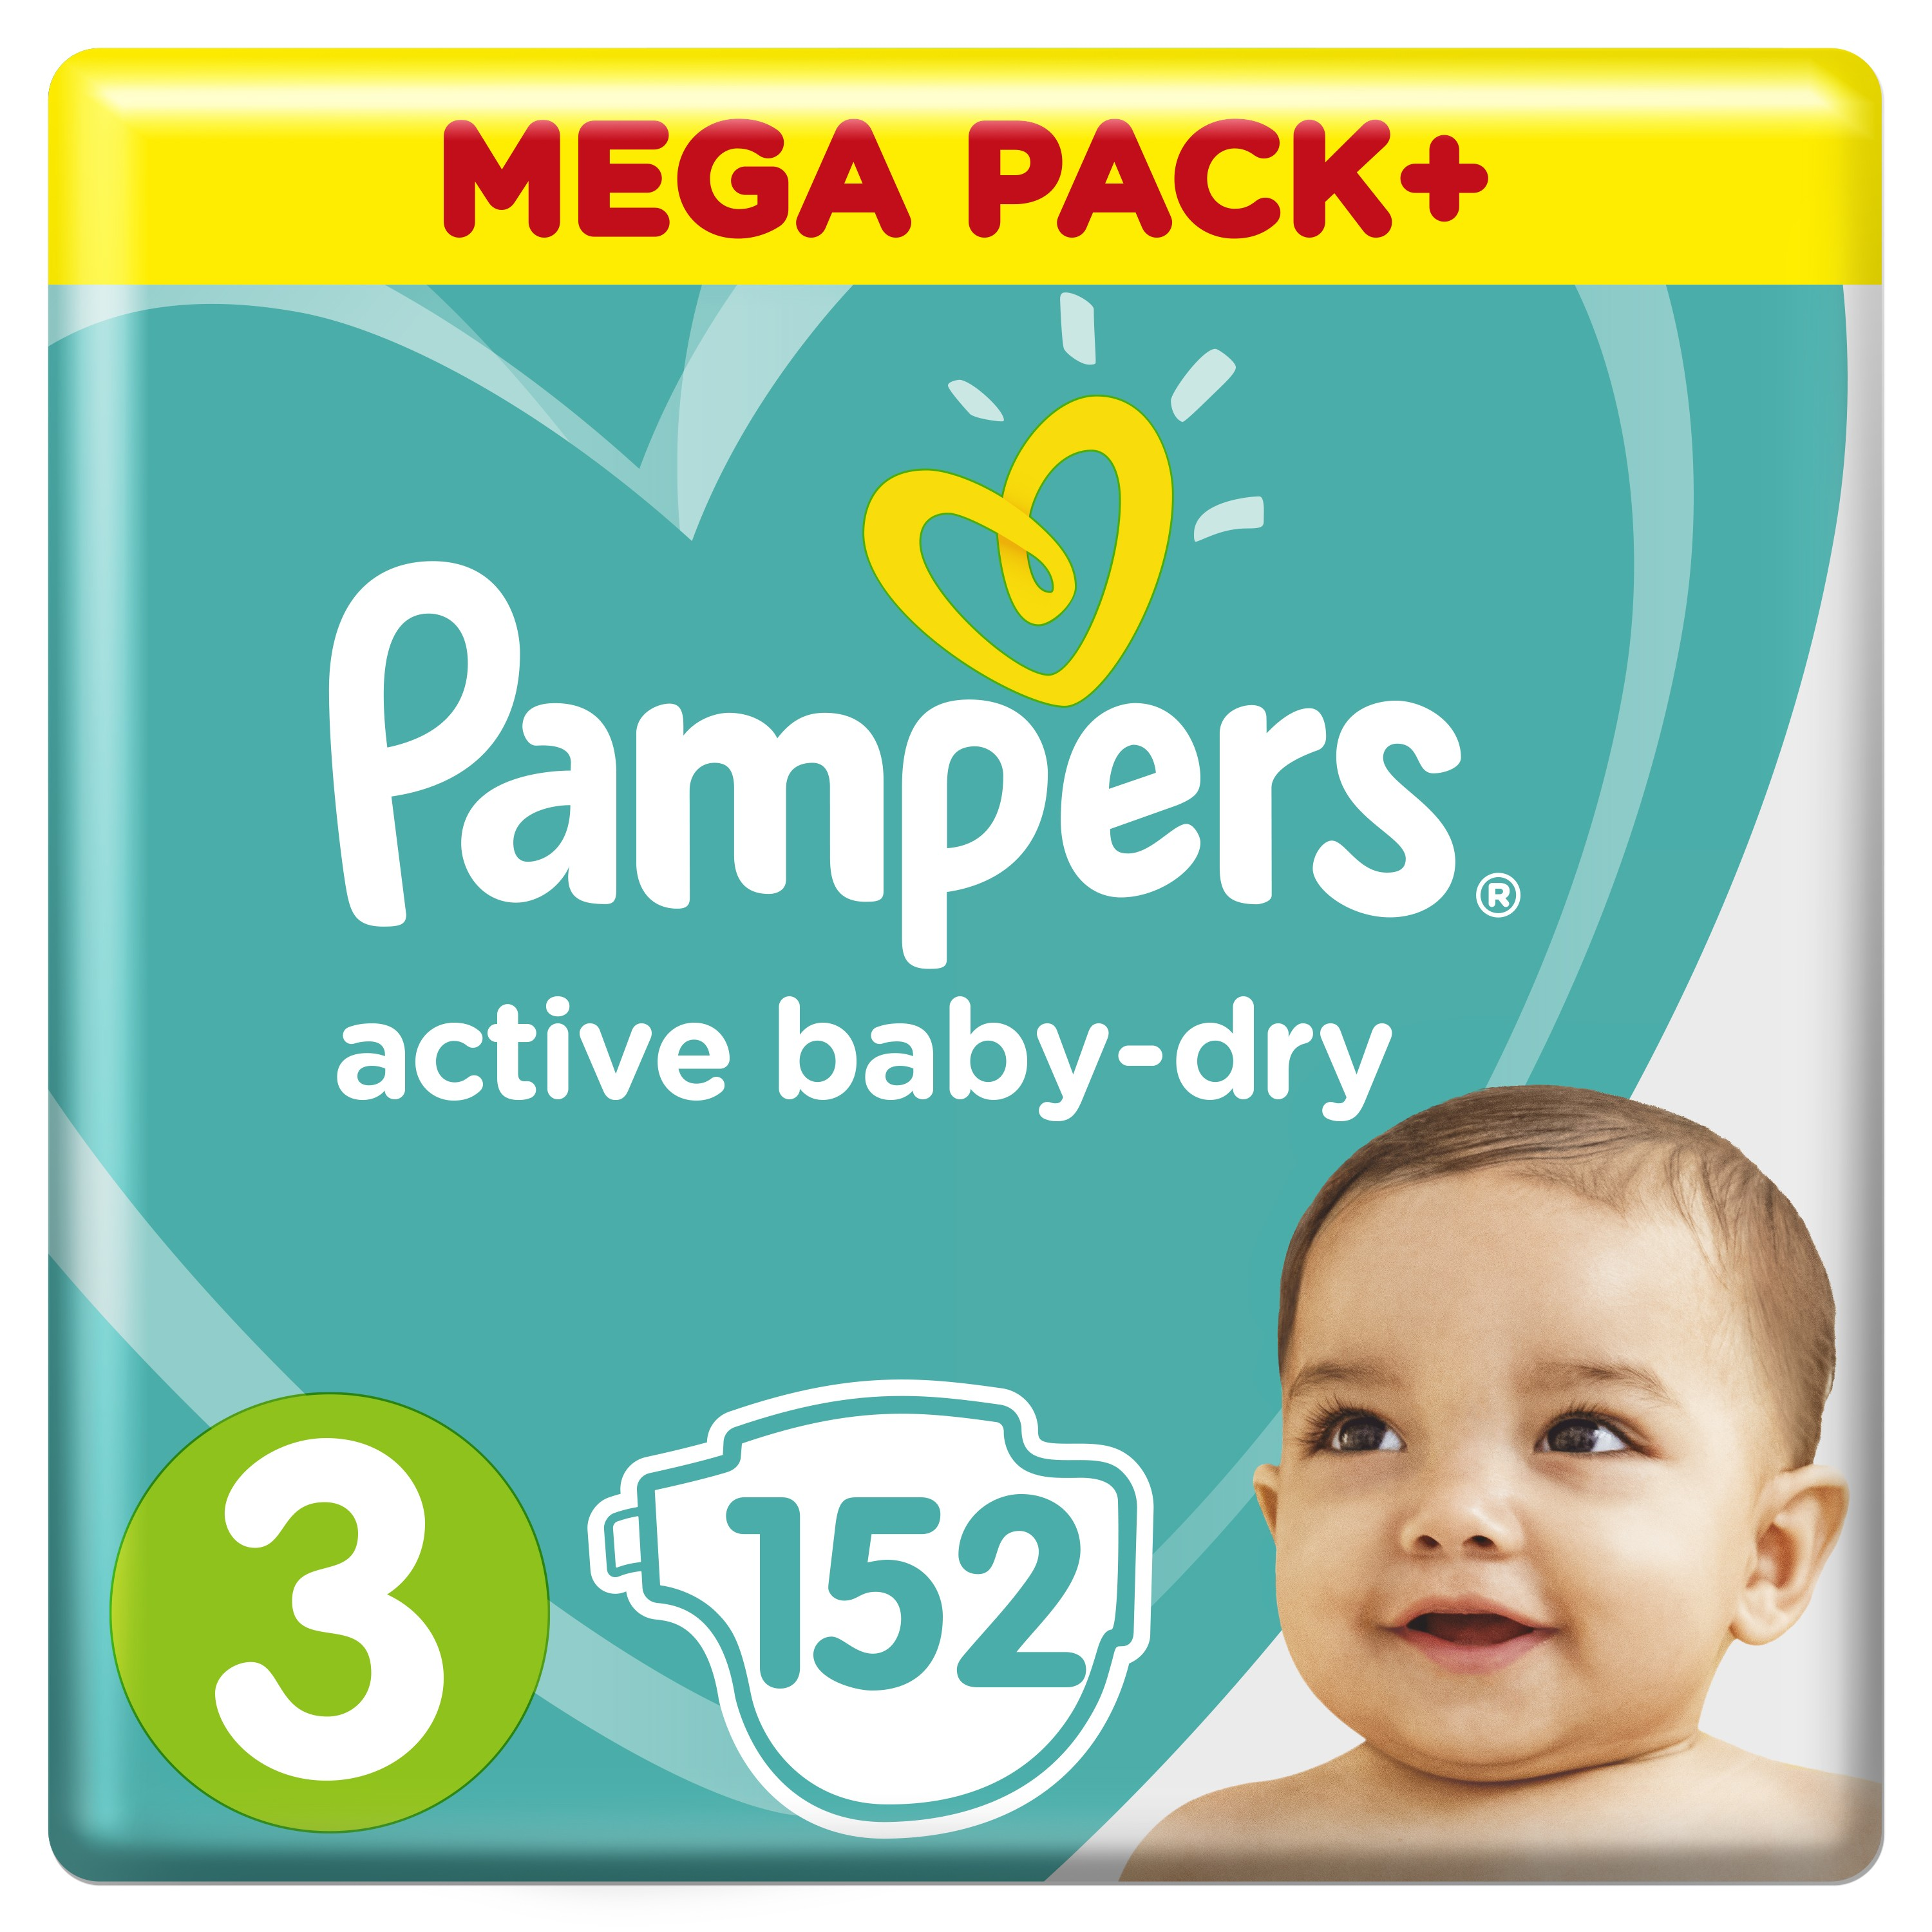 Подгузники Pampers Active Baby Dry 6 10 кг, 3 размер, 152 шт.|baby diapers|diapers for childrendisposable baby diapers | АлиЭкспресс